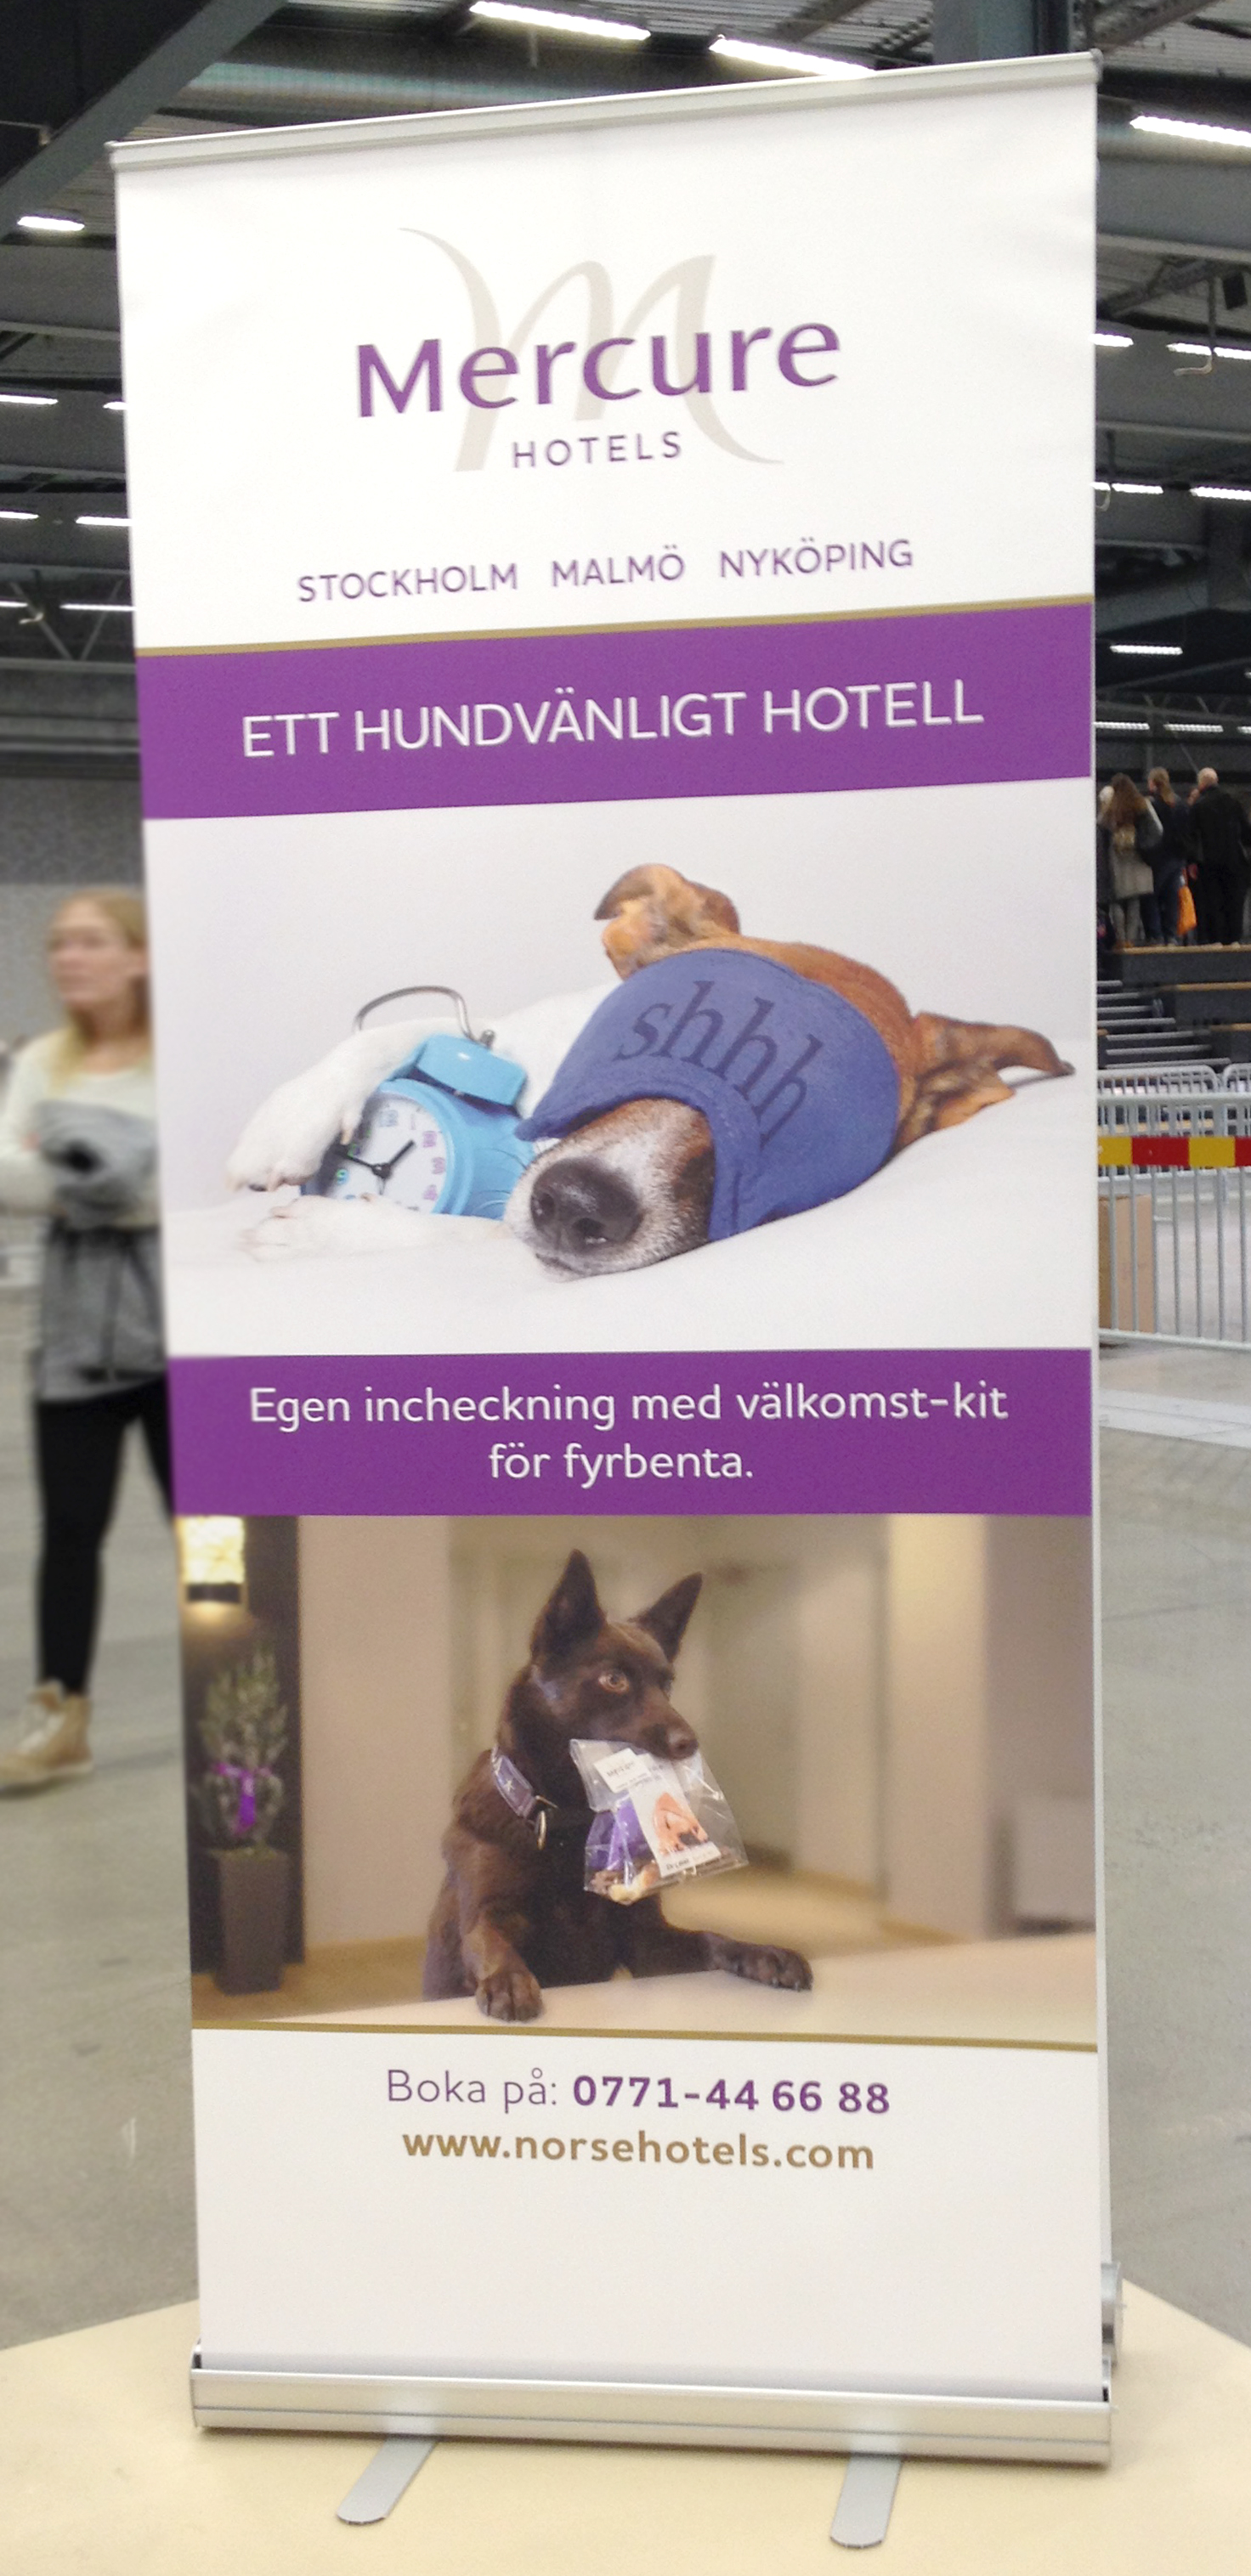 Roll up med info om Mercure Hotels hundkoncept.